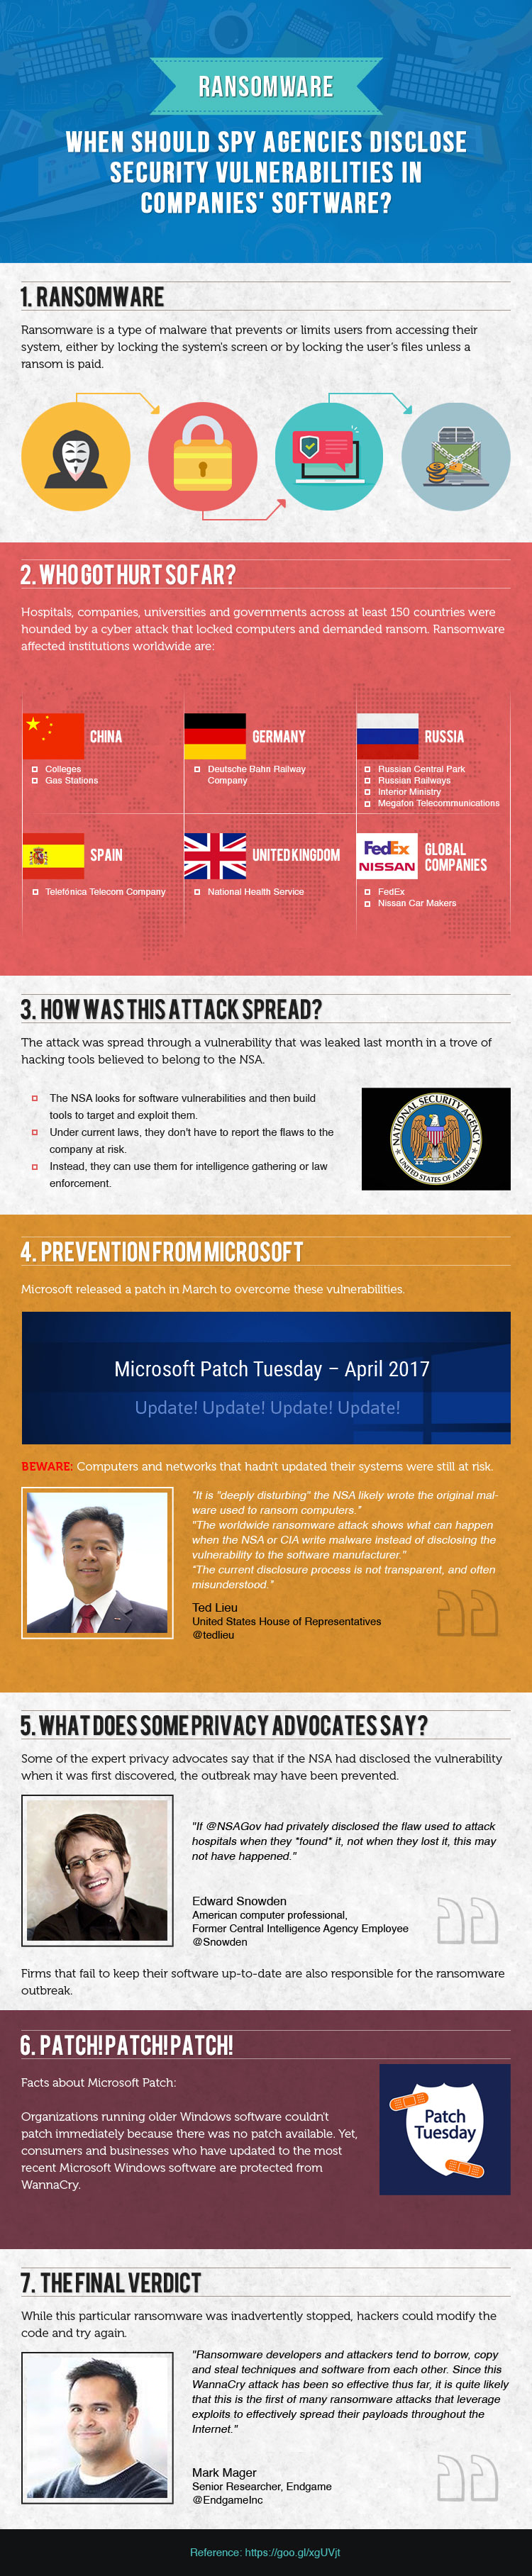 Cyber Security - Vulnerabilities and Ransomware